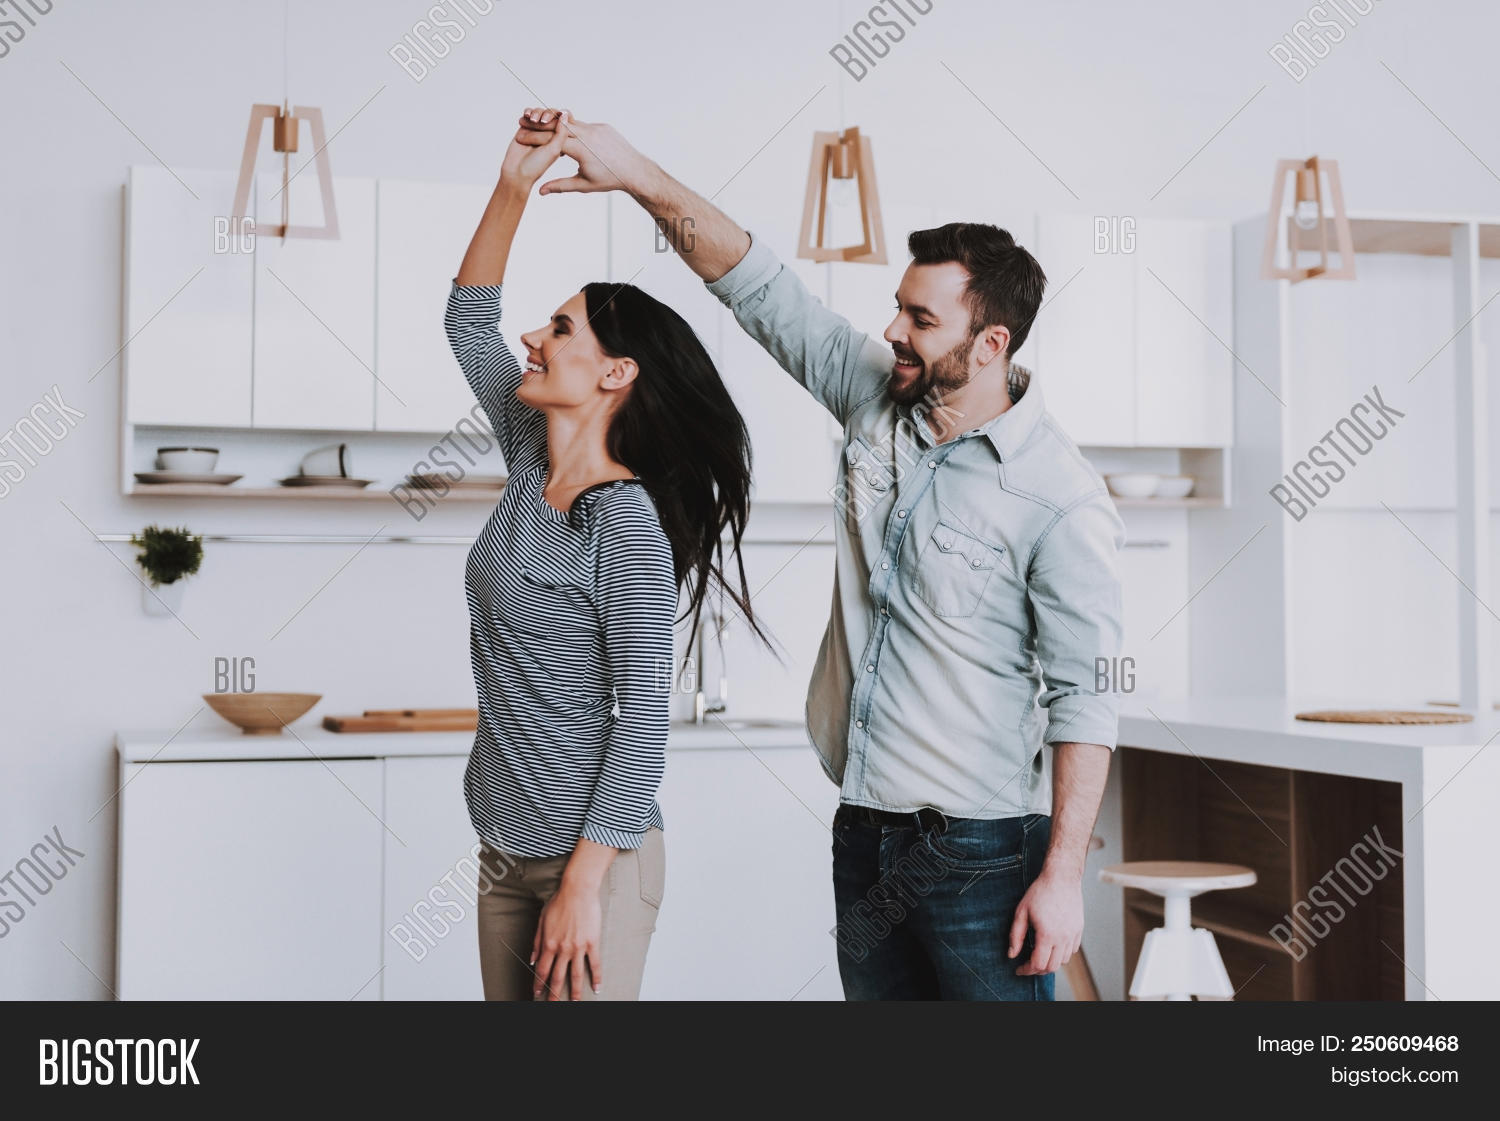 Young Happy Couple Image Photo Free Trial Bigstock